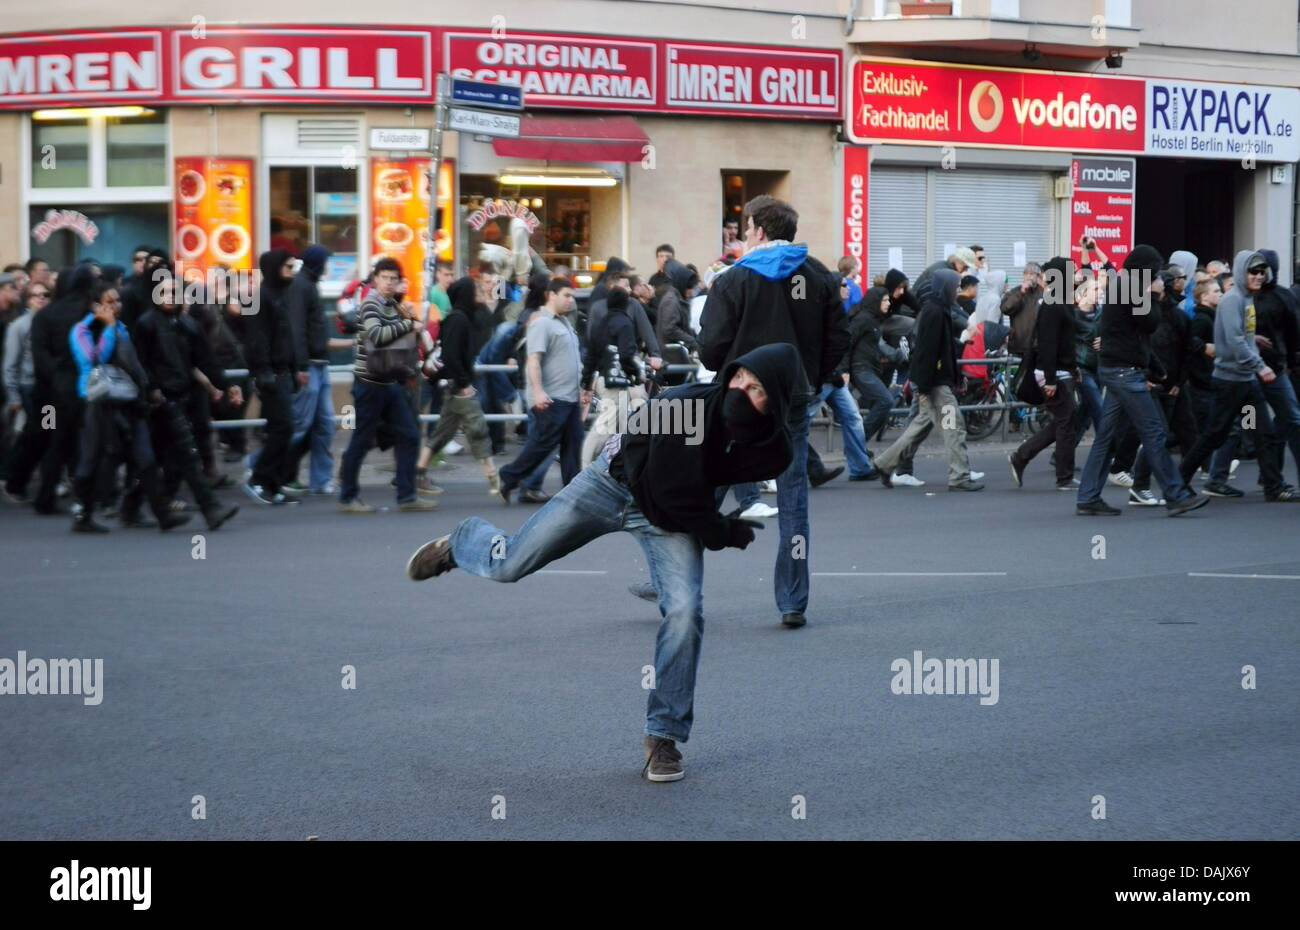 A leftist throws stones at the revolutionary Nay day demonstration in Berlin, Germany, 1 May 2011. Photo: Hannibal - Stock Image